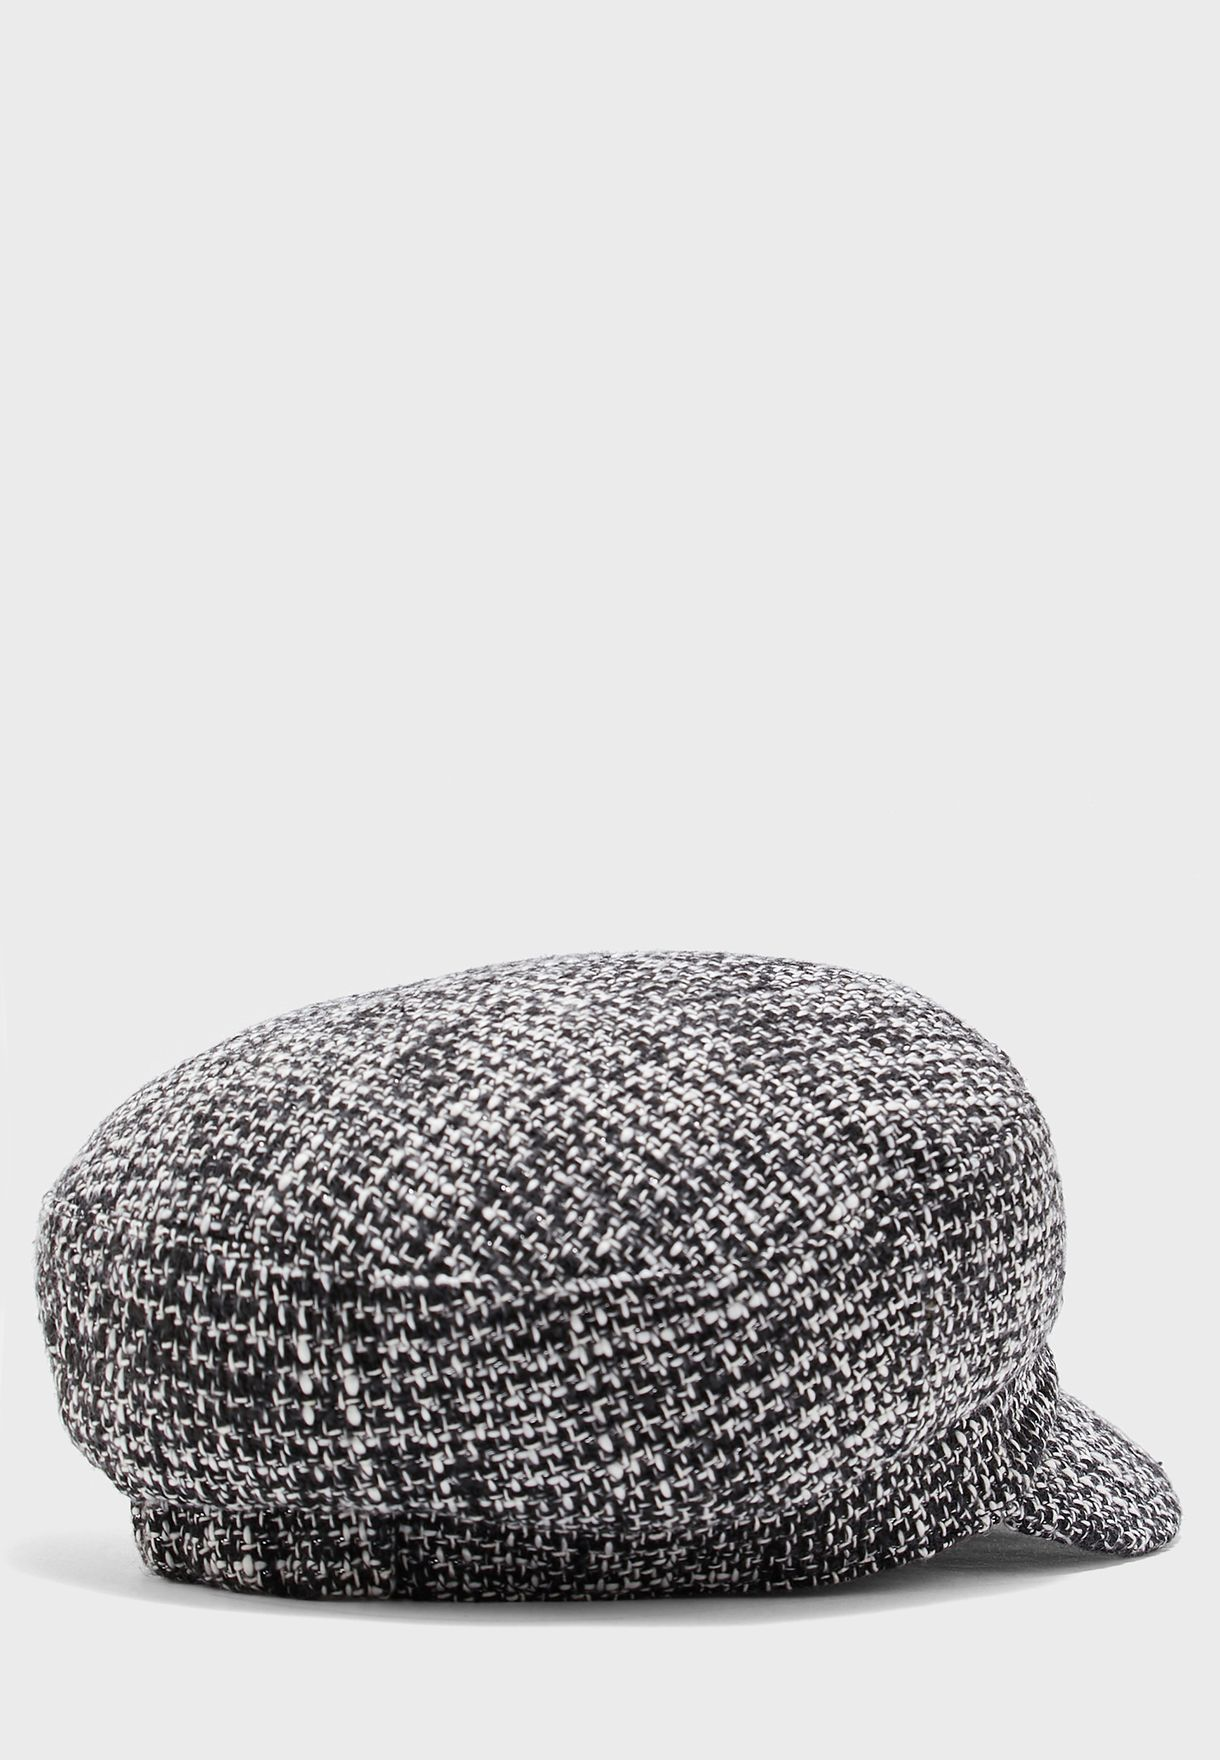 Lurex Baker Boy Hat